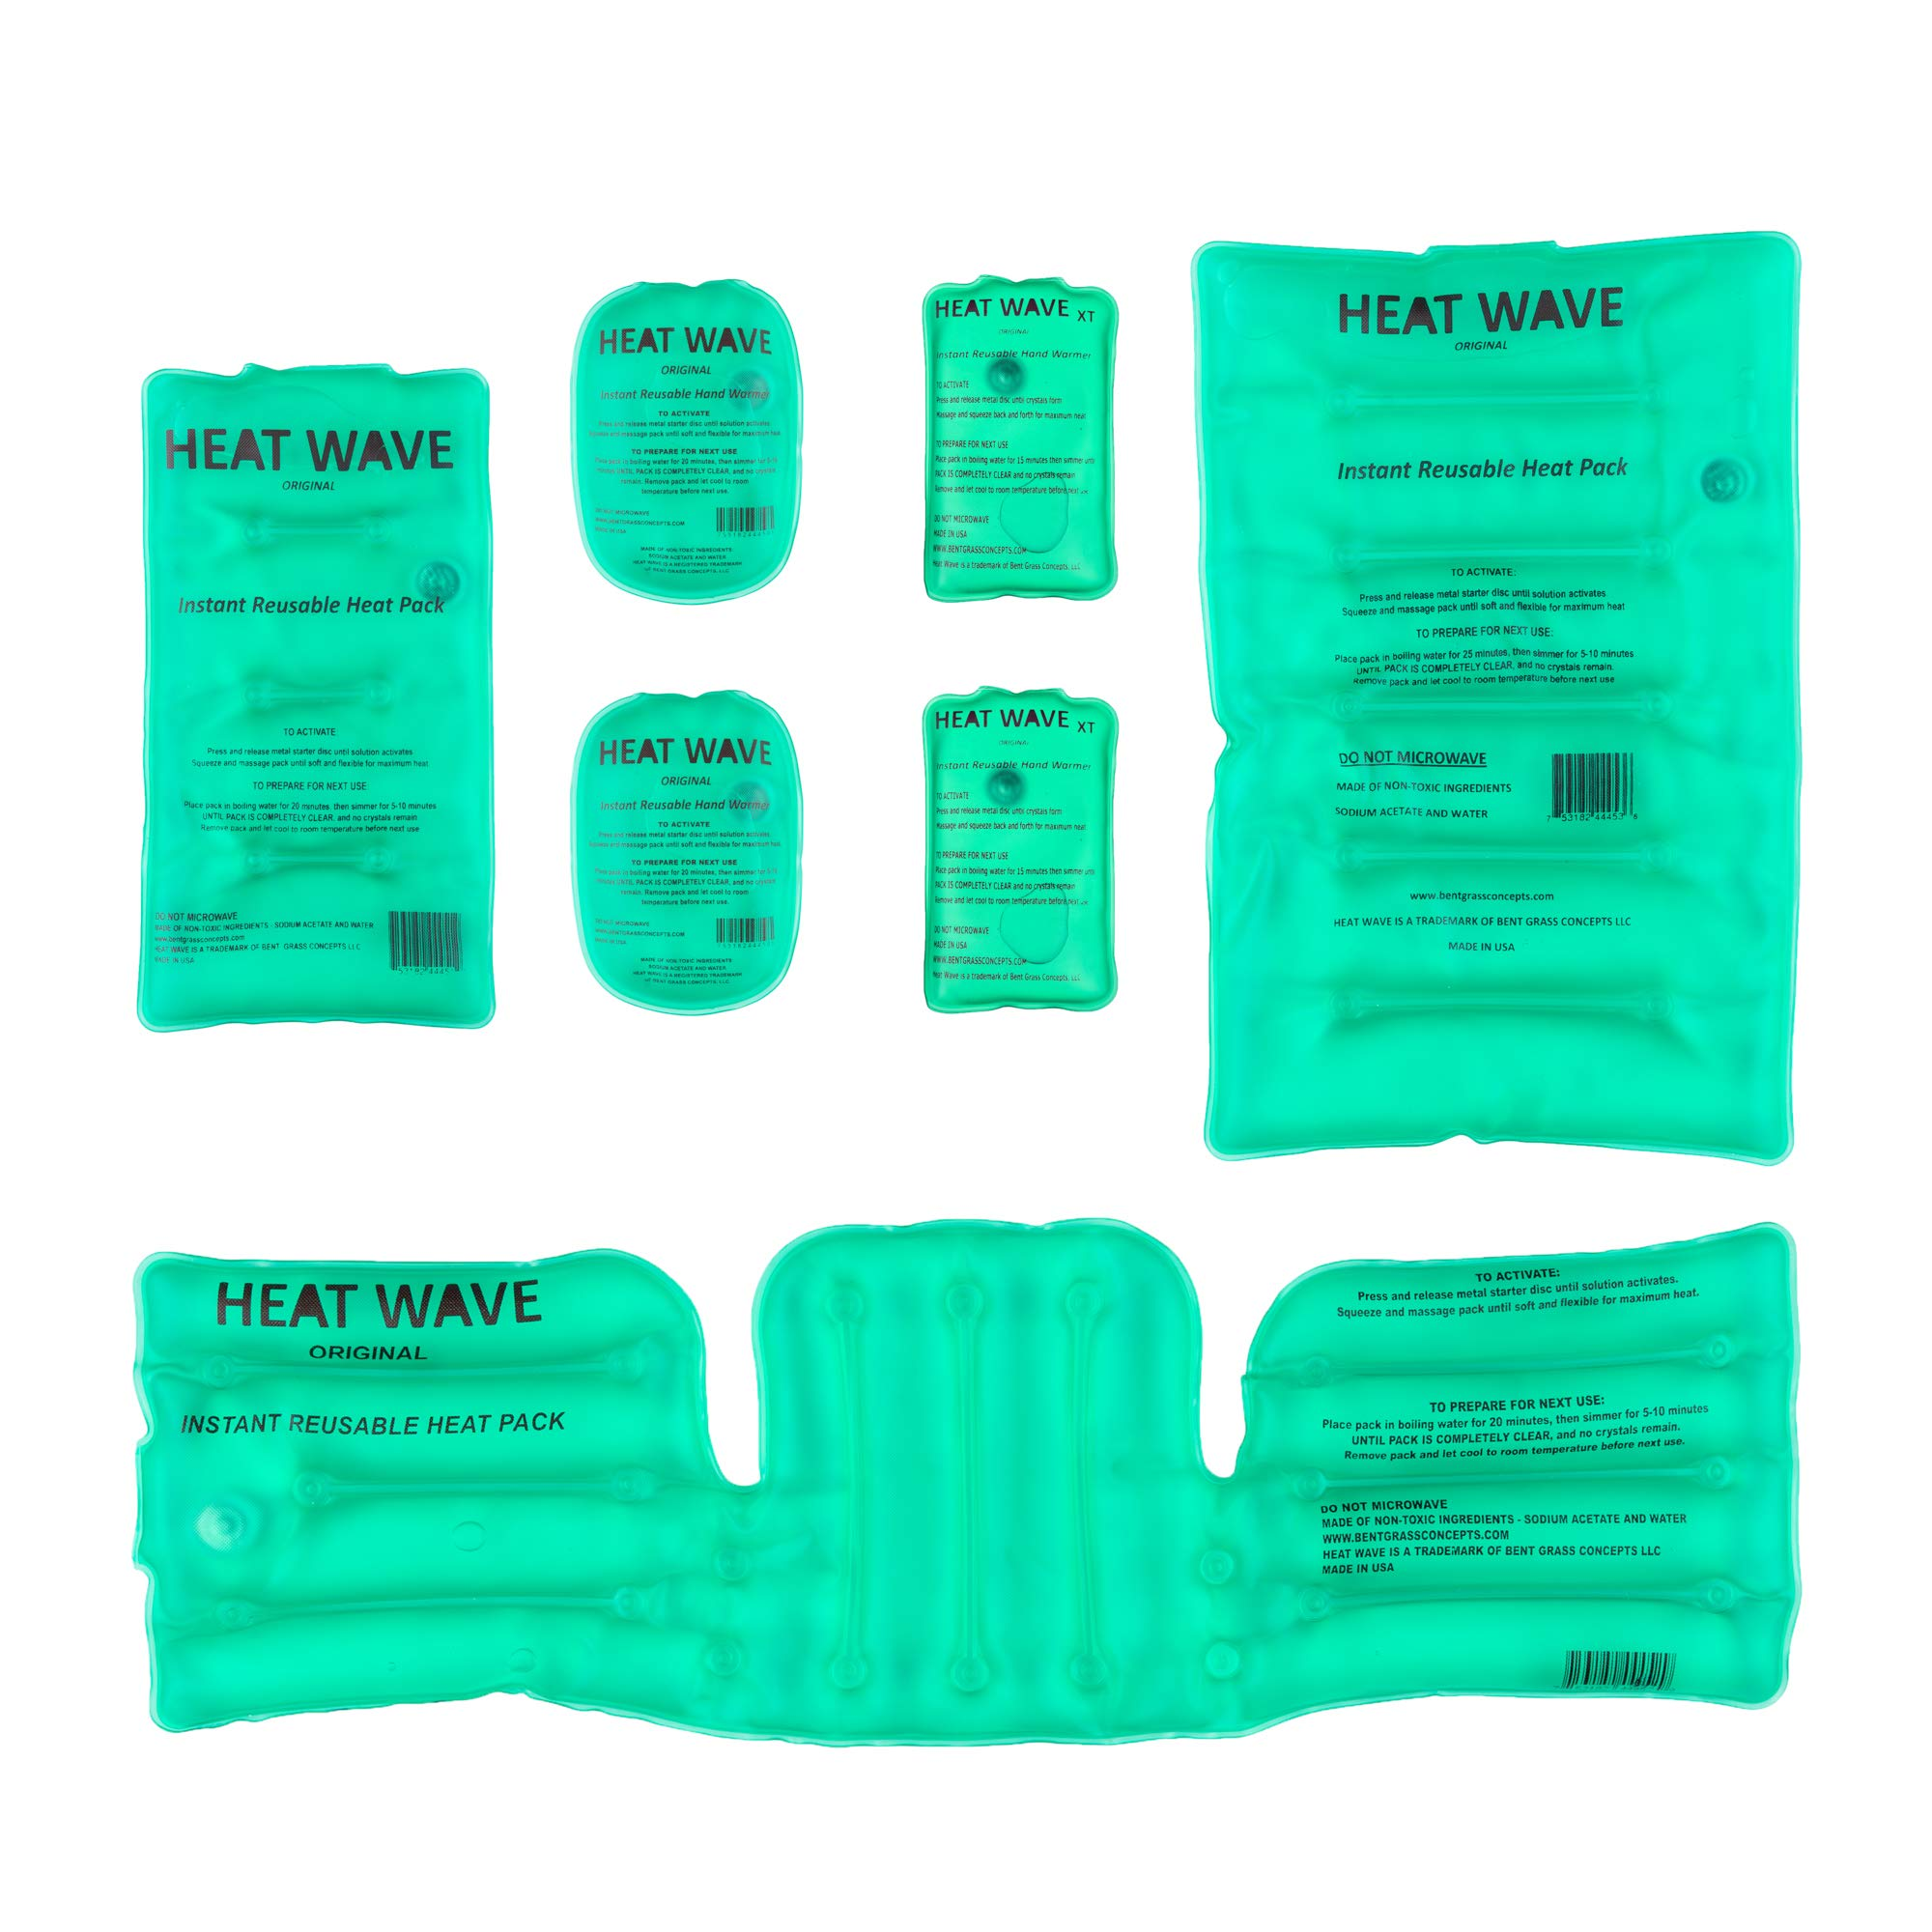 HEAT WAVE Instant Reusable Heat Packs & Hand Warmers - 2 Original & 2 Large XT Hand Warmers, 1 Medium, 1 Large, and 1 Neck/Shoulder/Back - Made in USA by Heat Wave